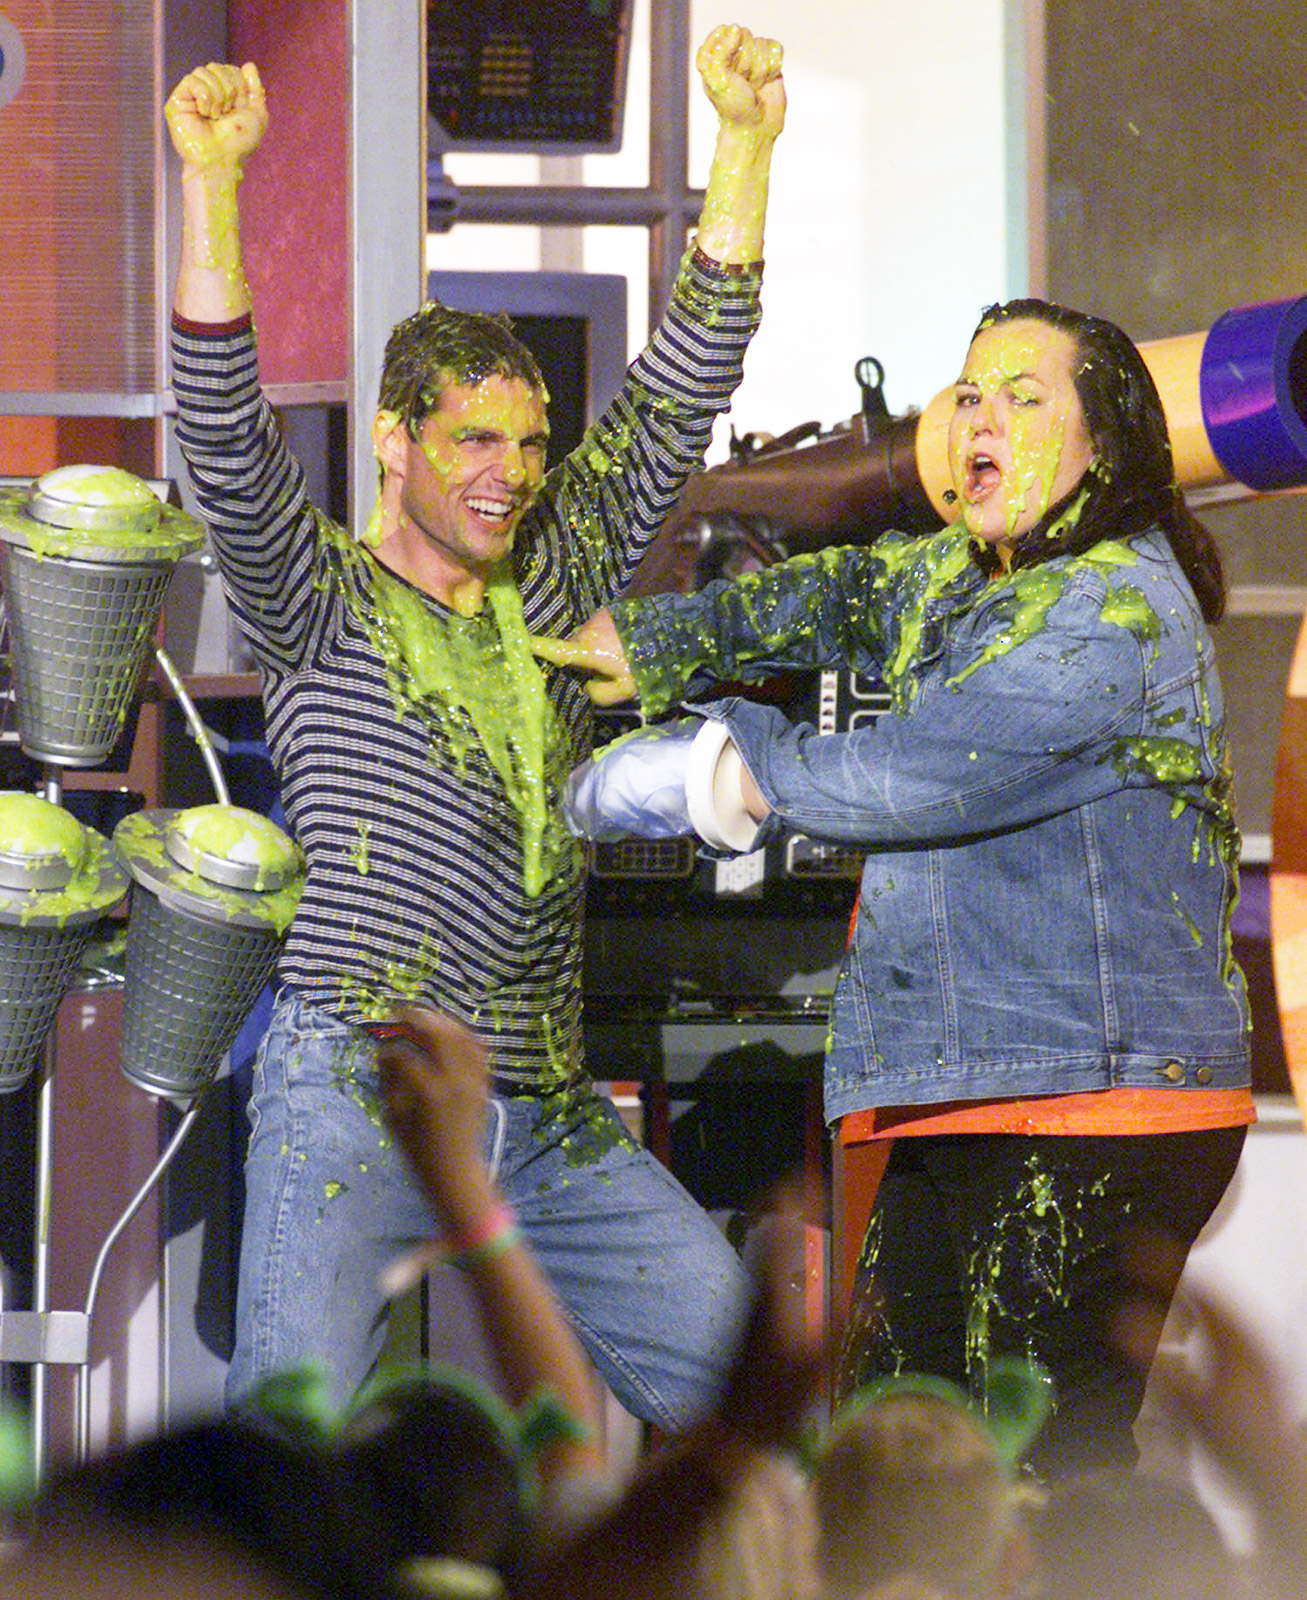 """My favorite guy in the world is here!"" host Rosie O'Donnell said before the Mission: Impossible actor was doused with green goo at the Barker Hanger in L.A. on Apr. 21, 2001. The comedienne tricked Cruise into getting slimed, telling him, ""I need your help . . .We're going to slime somebody and they don't have any idea who it is. All you gotta do is hit that top button!"""